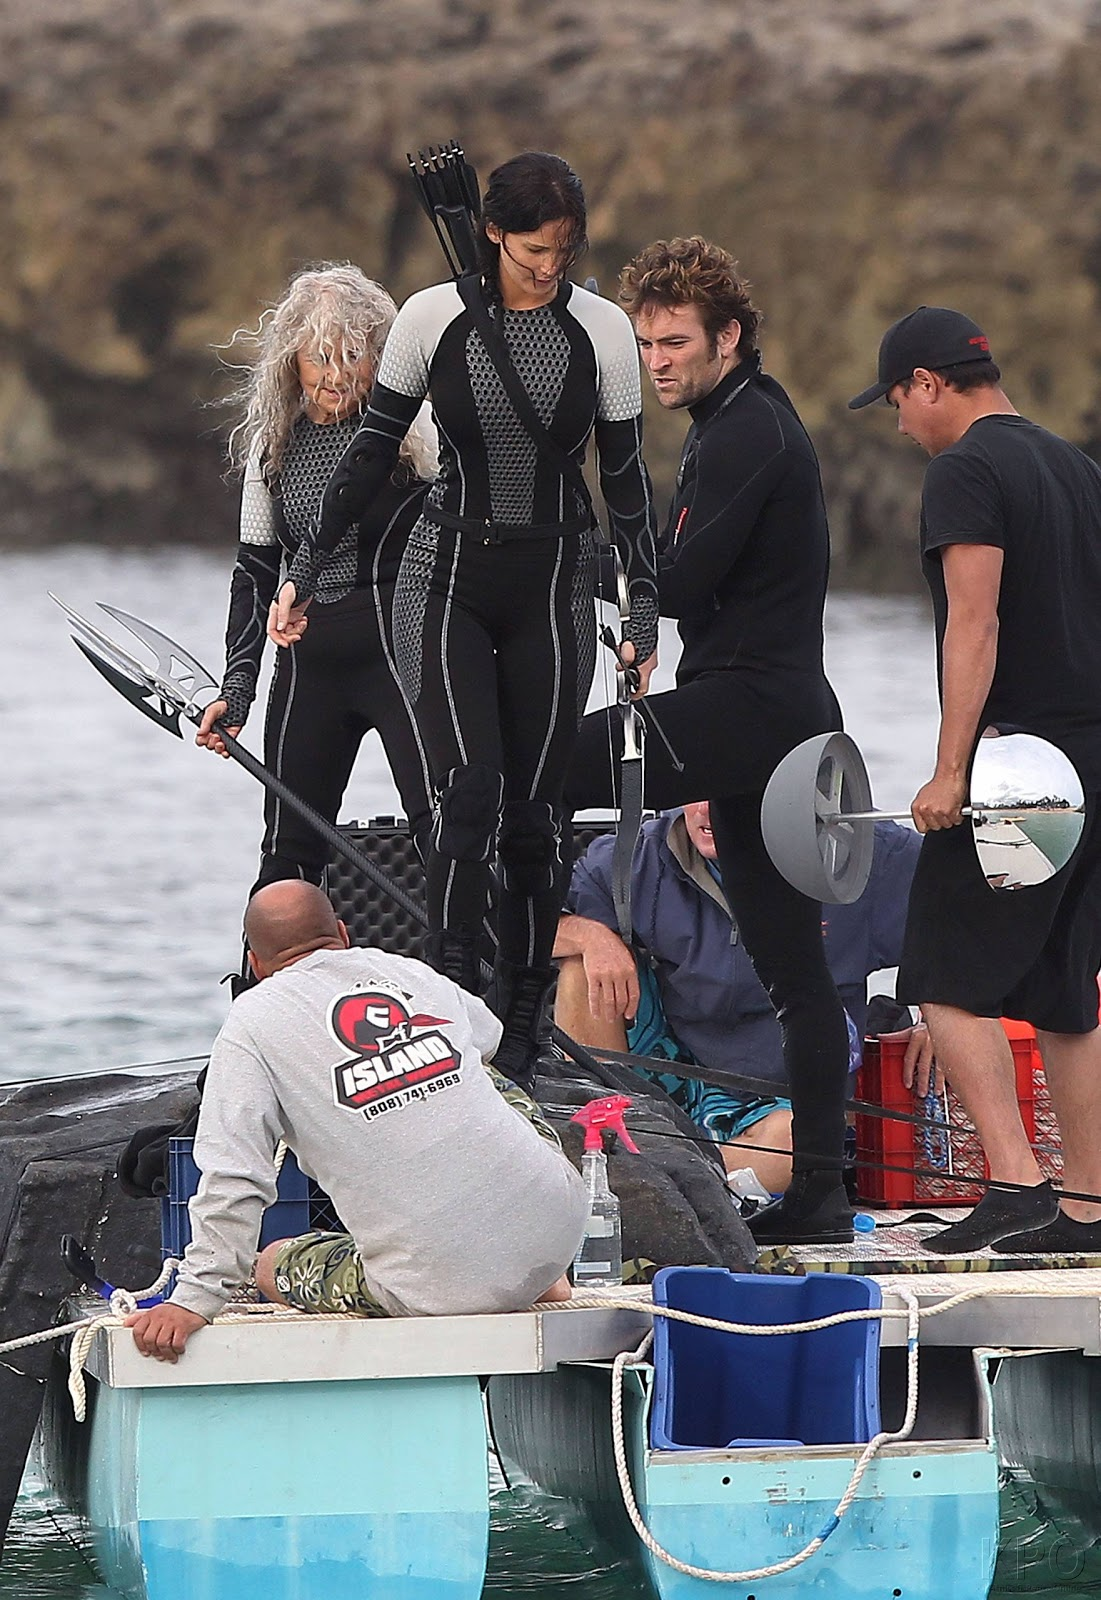 http://1.bp.blogspot.com/-APegkScnUTg/ULZa4kukmtI/AAAAAAAALBs/SI6BS9e1Gt4/s1600/hunger-games-catching-fire-jennifer-lawrence-set-photo-2.jpg